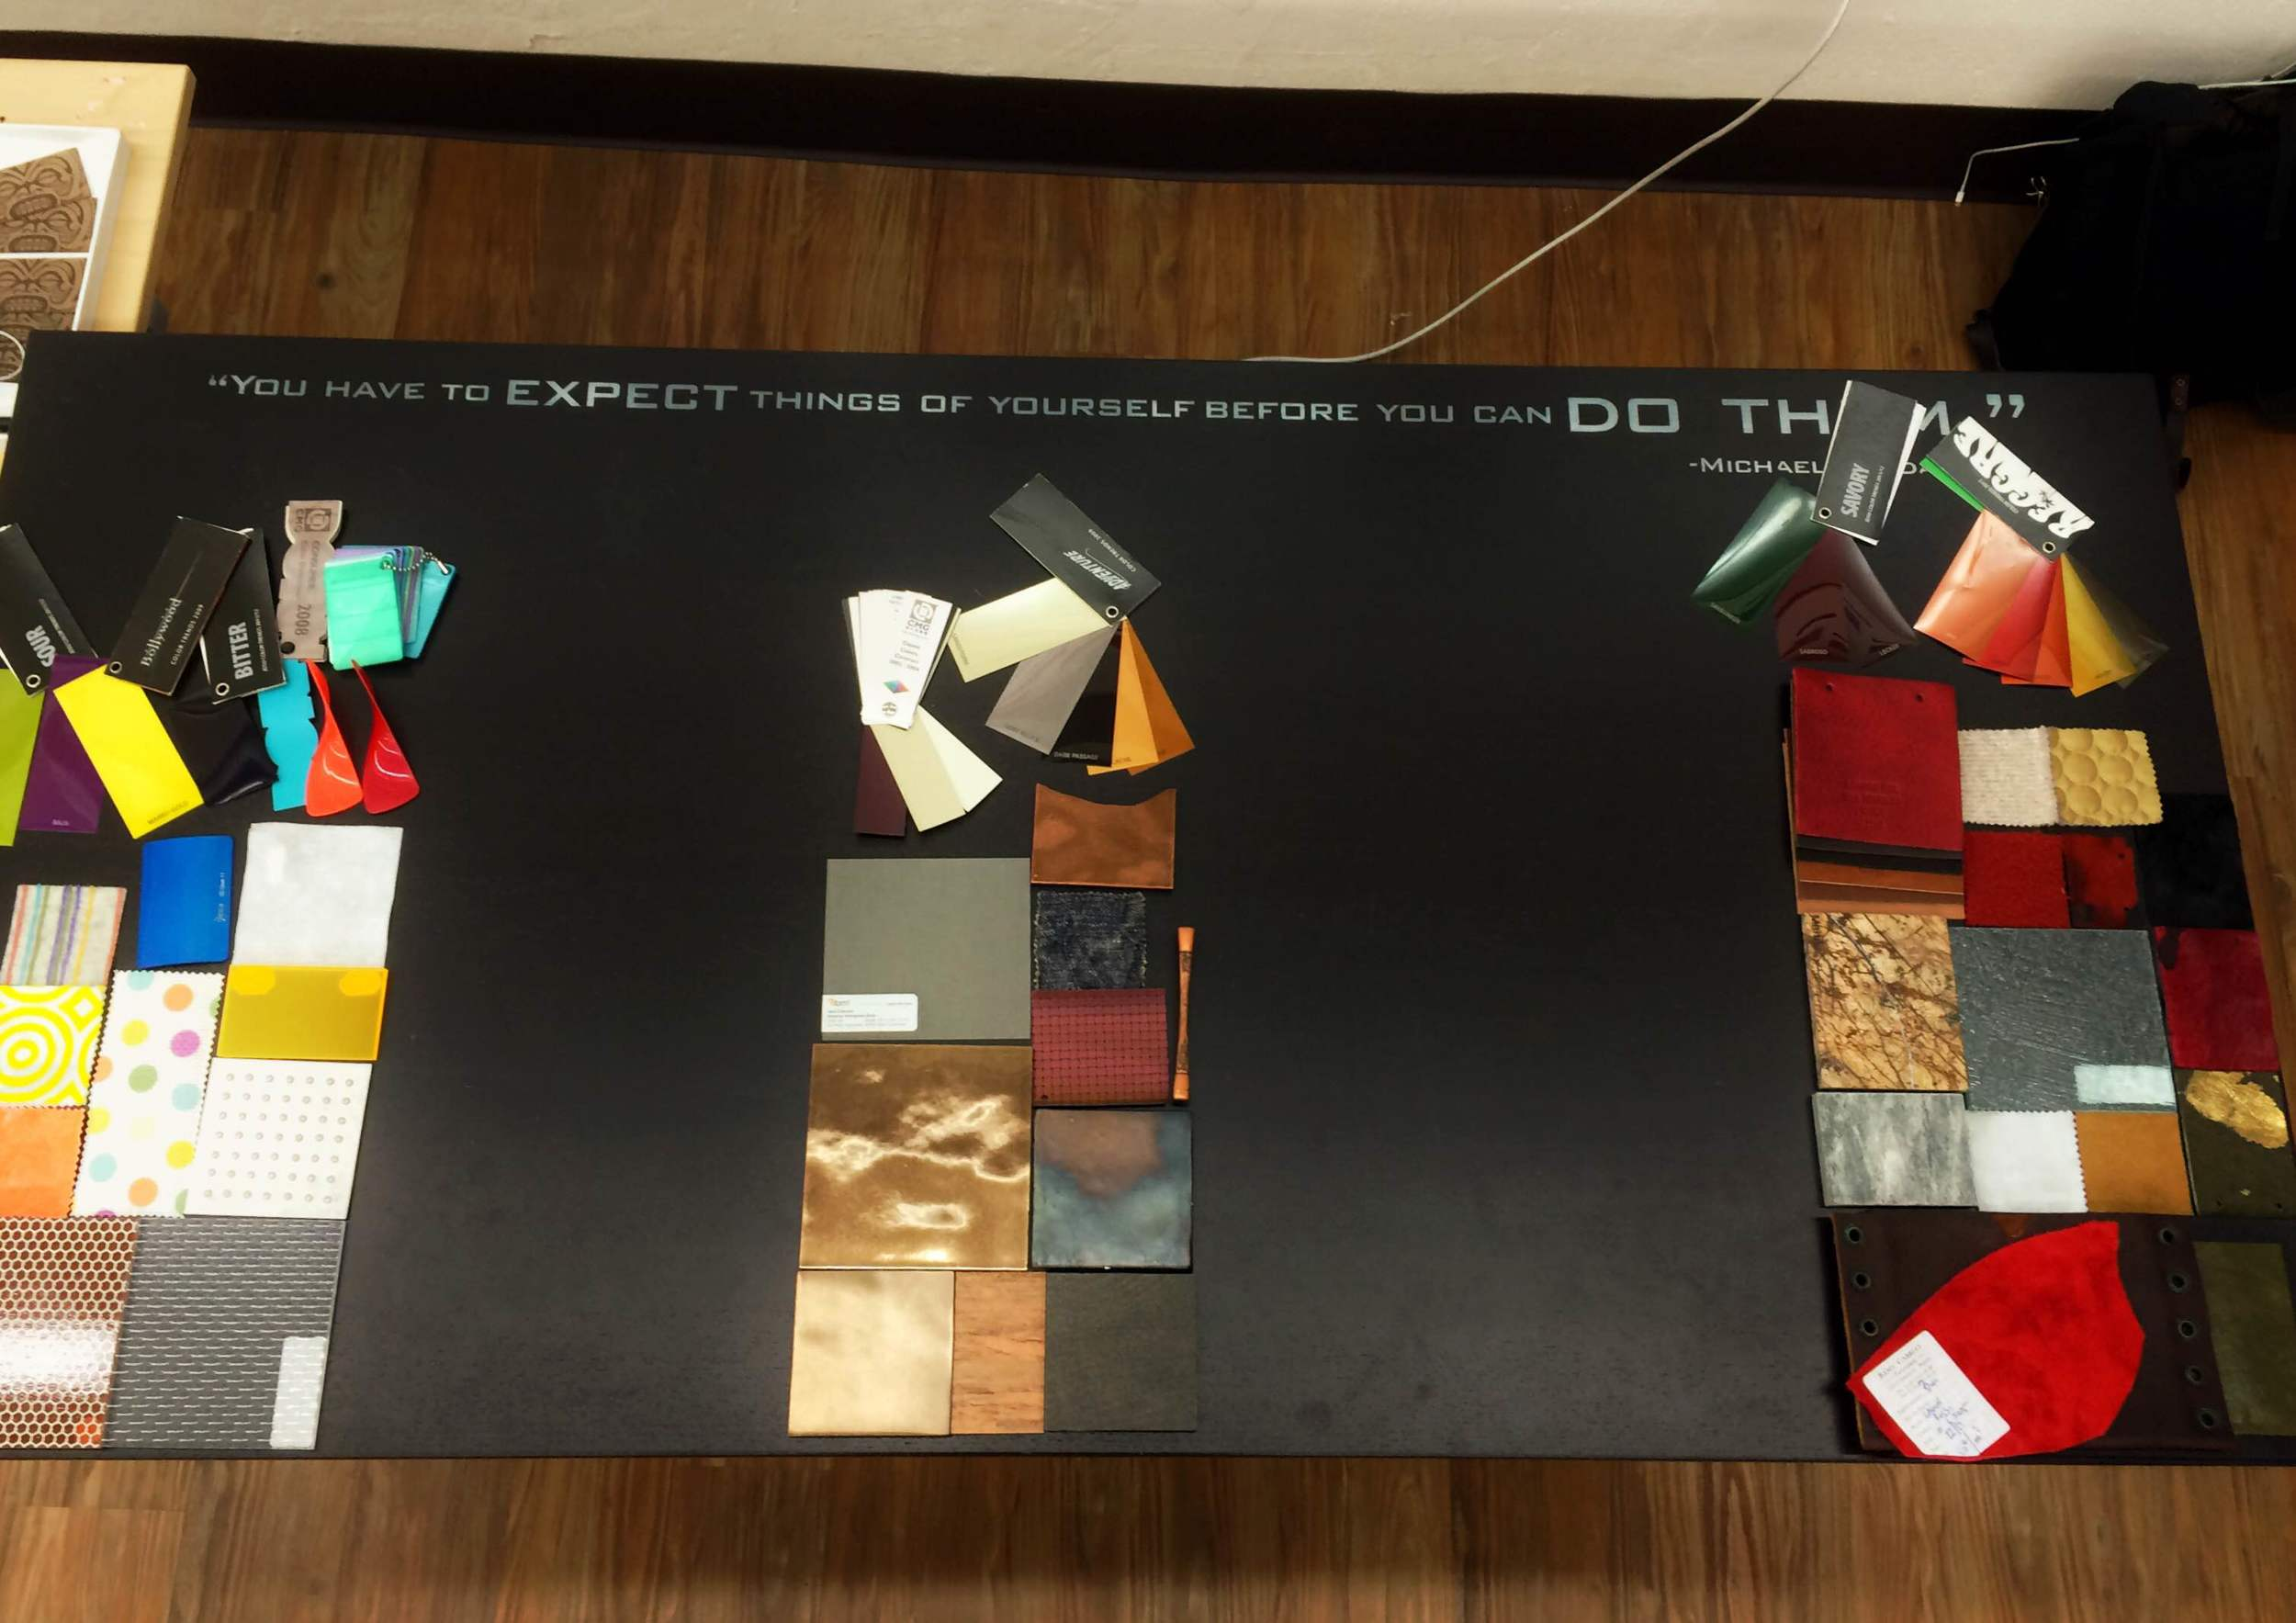 Pulling color and materials for Ikea, West Elm, and The Point Resort, respectively.